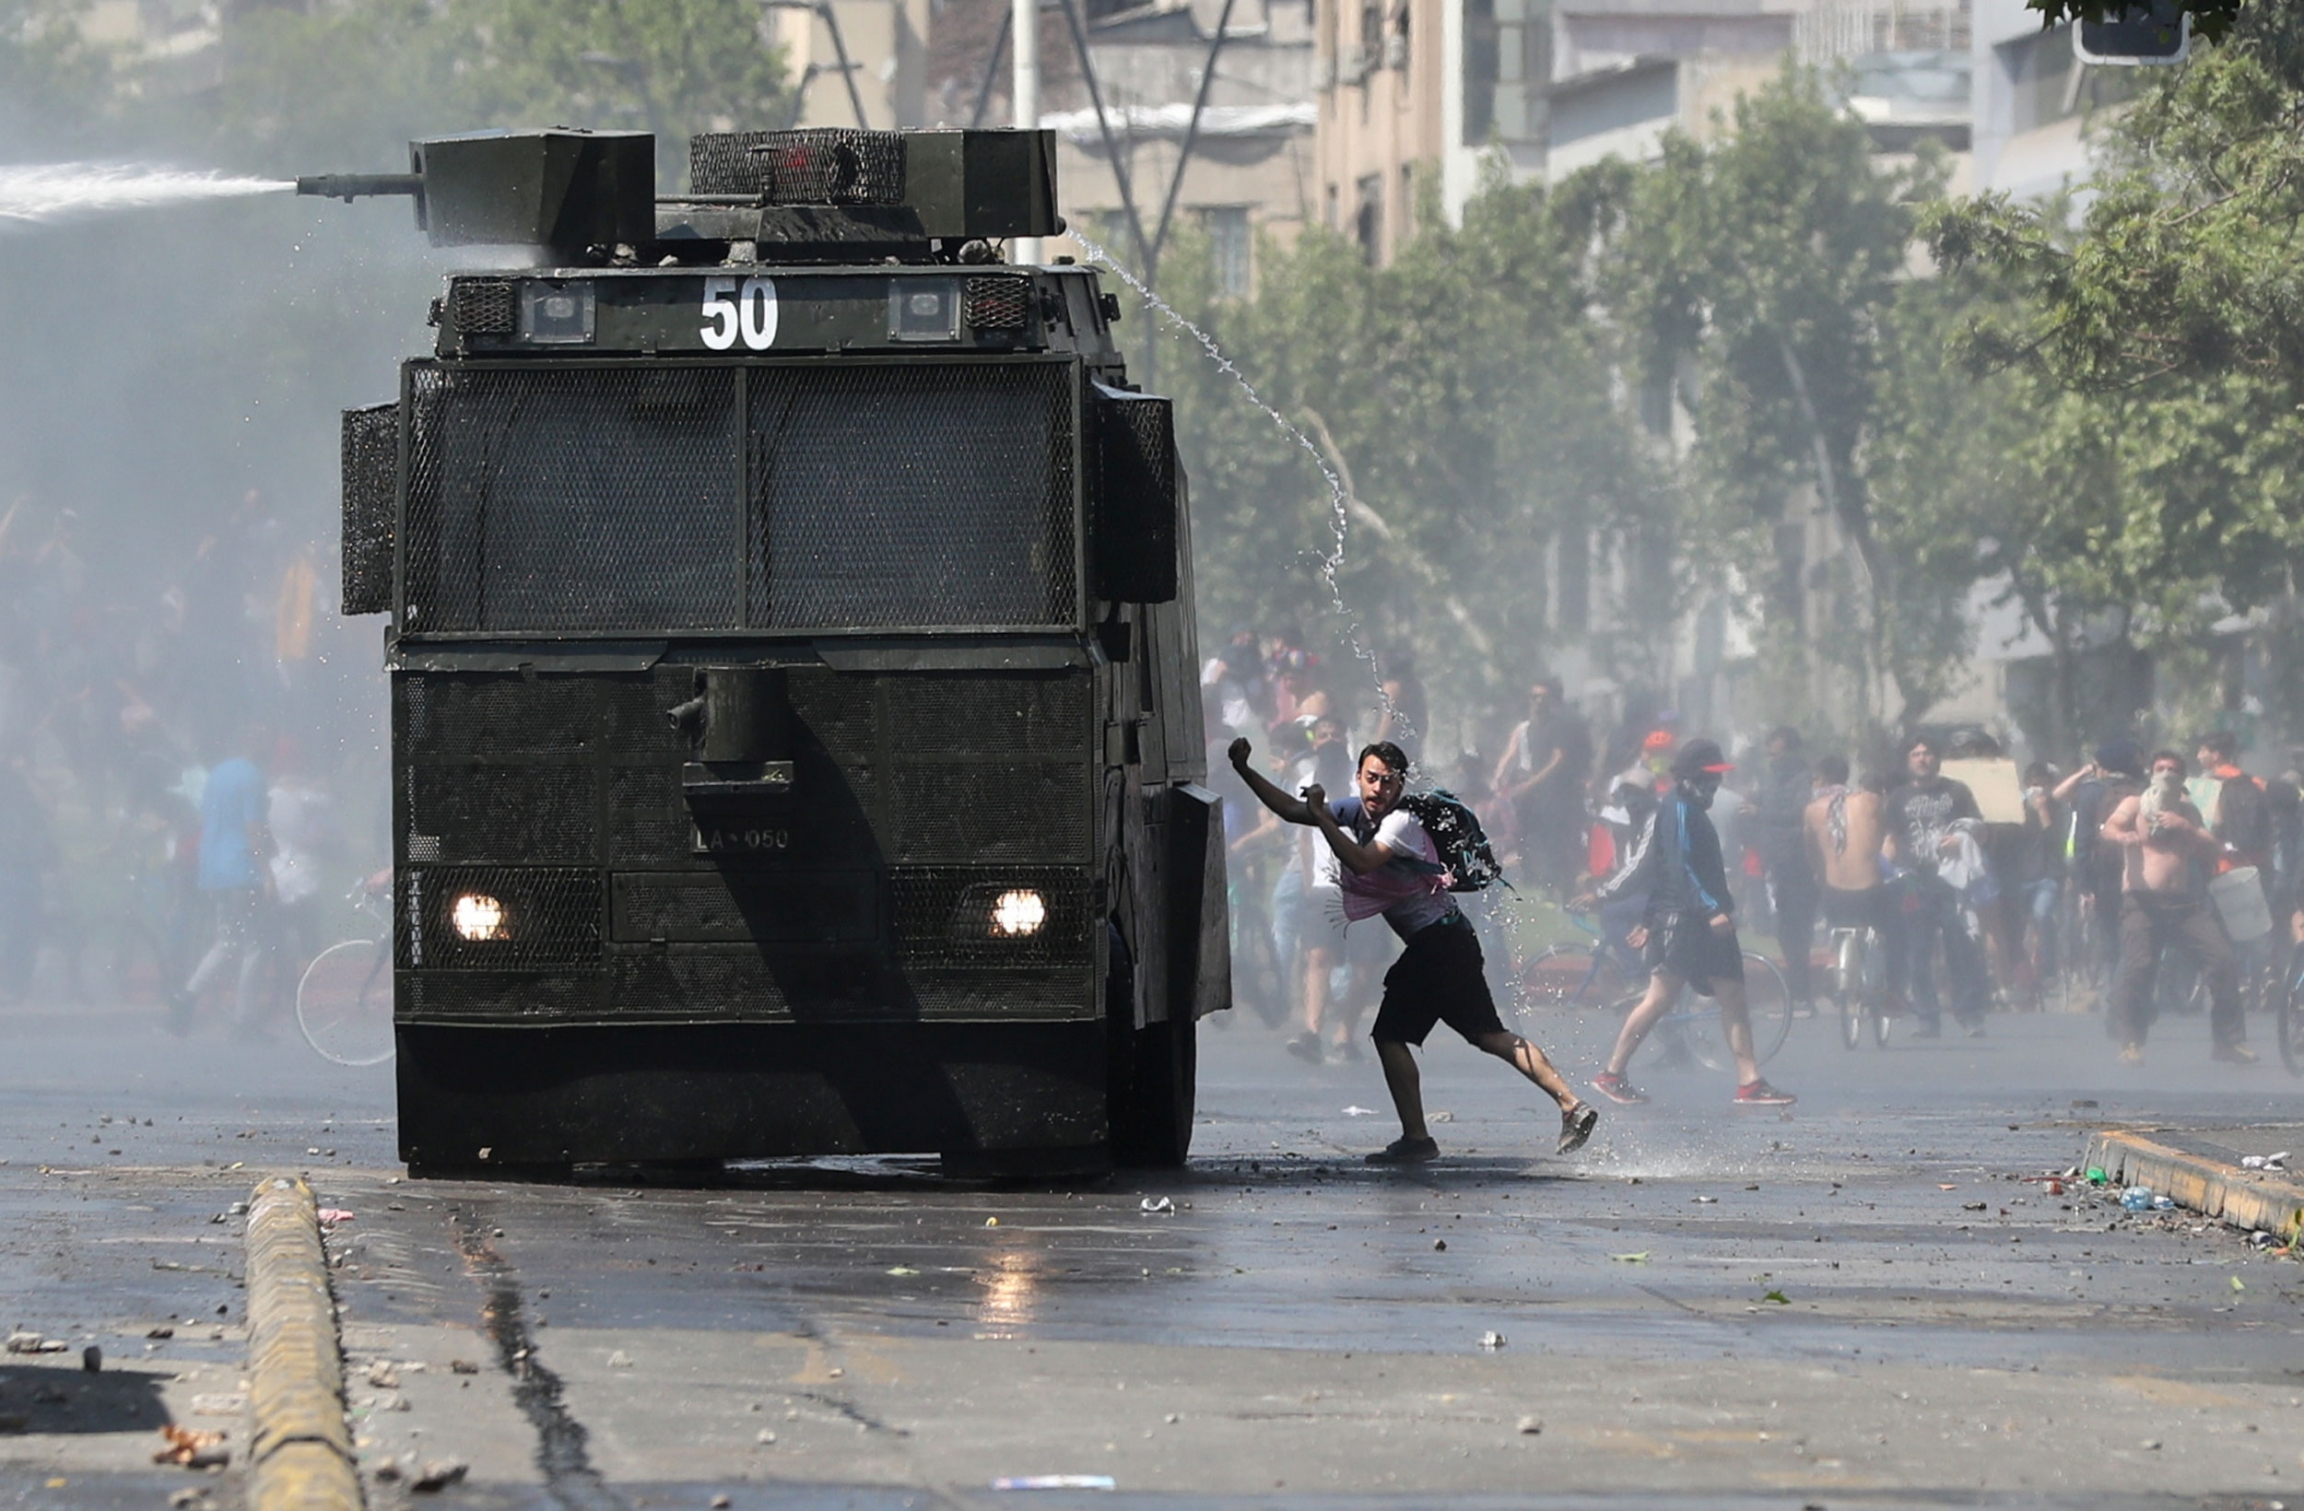 A man is shown wearing shorts and a t-shirt while getting sprayed by a police water cannon from above.